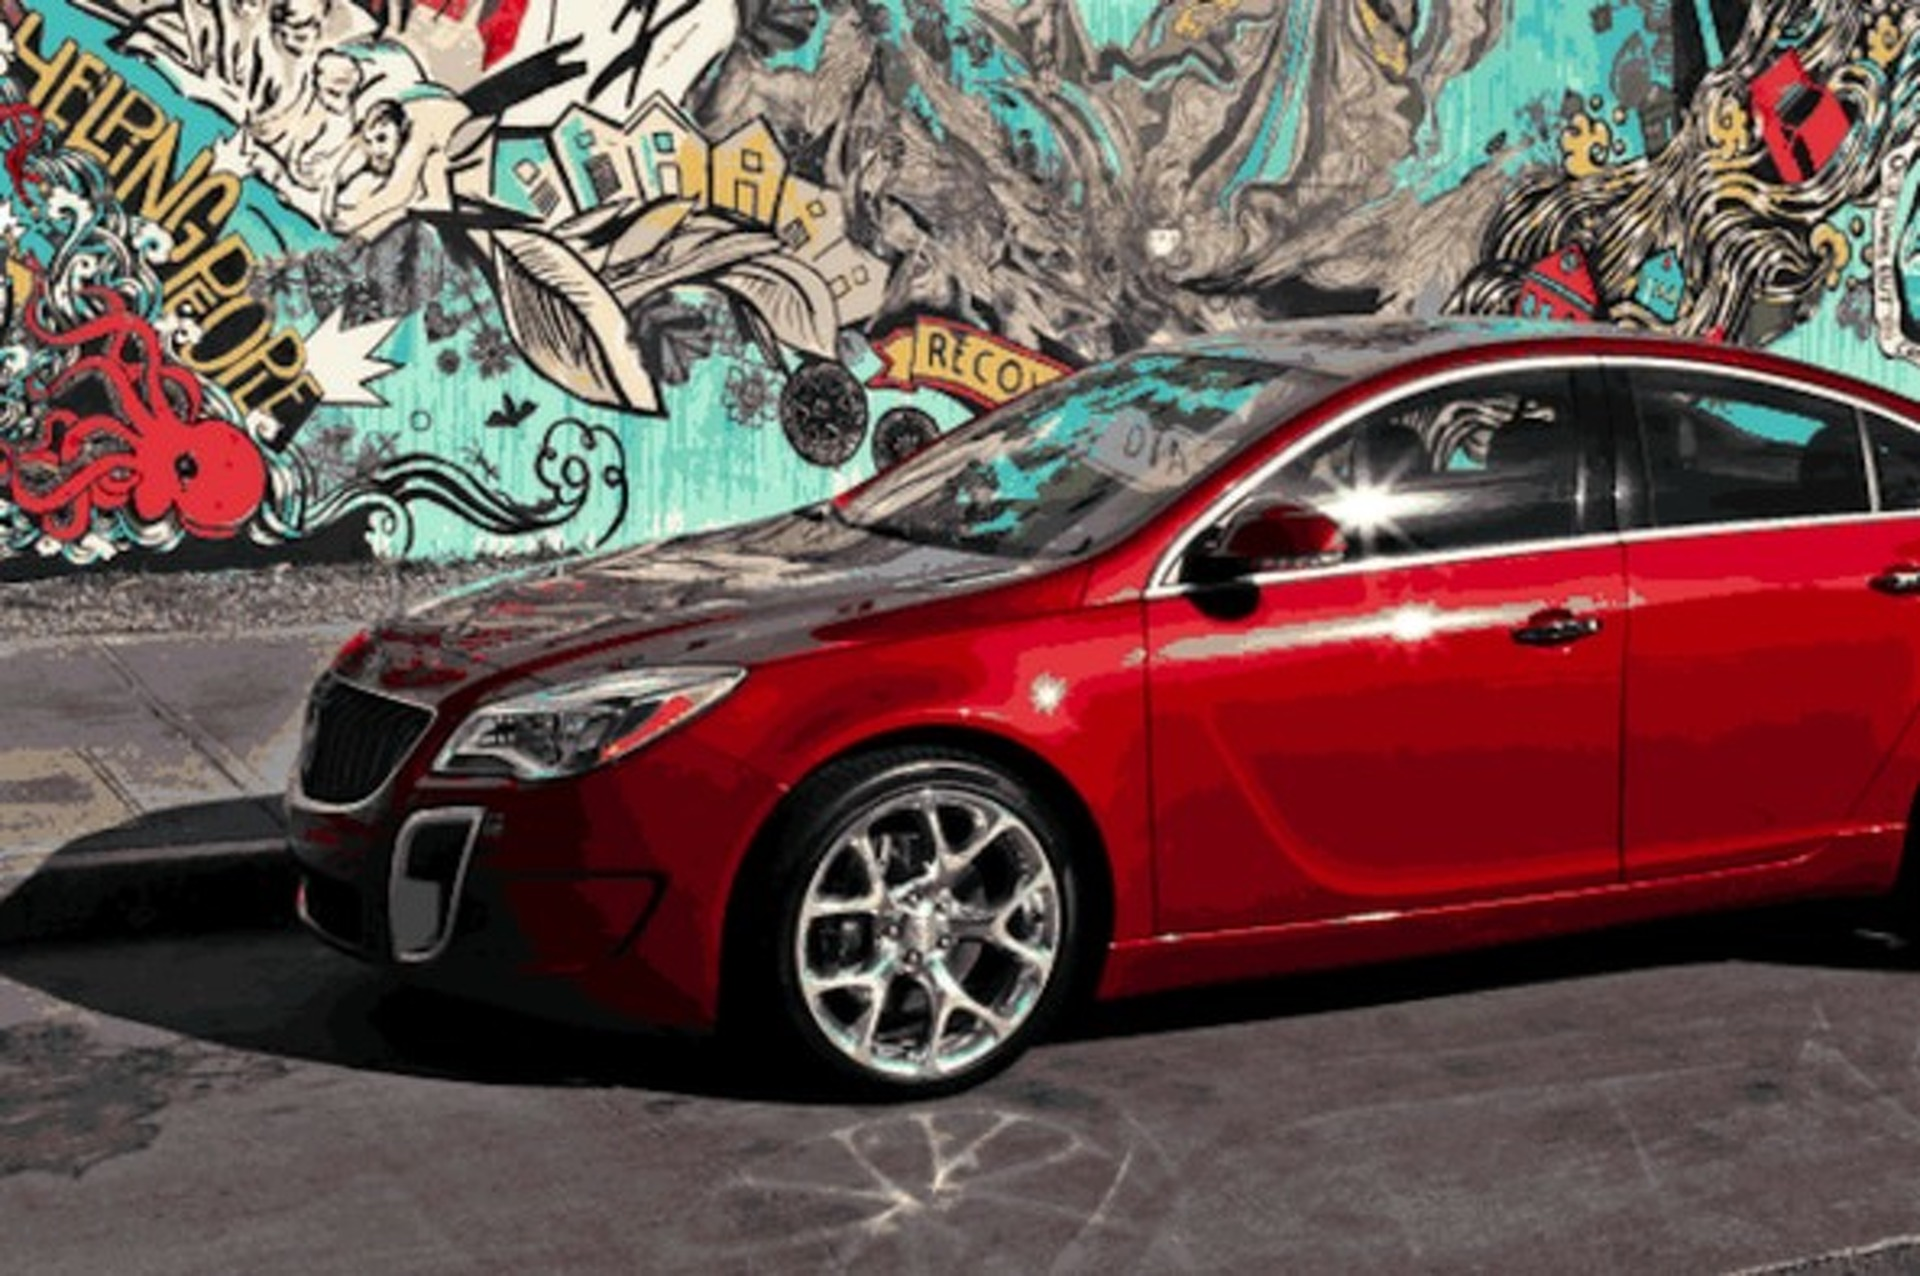 2014 Buick Regal GS Review: You Better Regalize